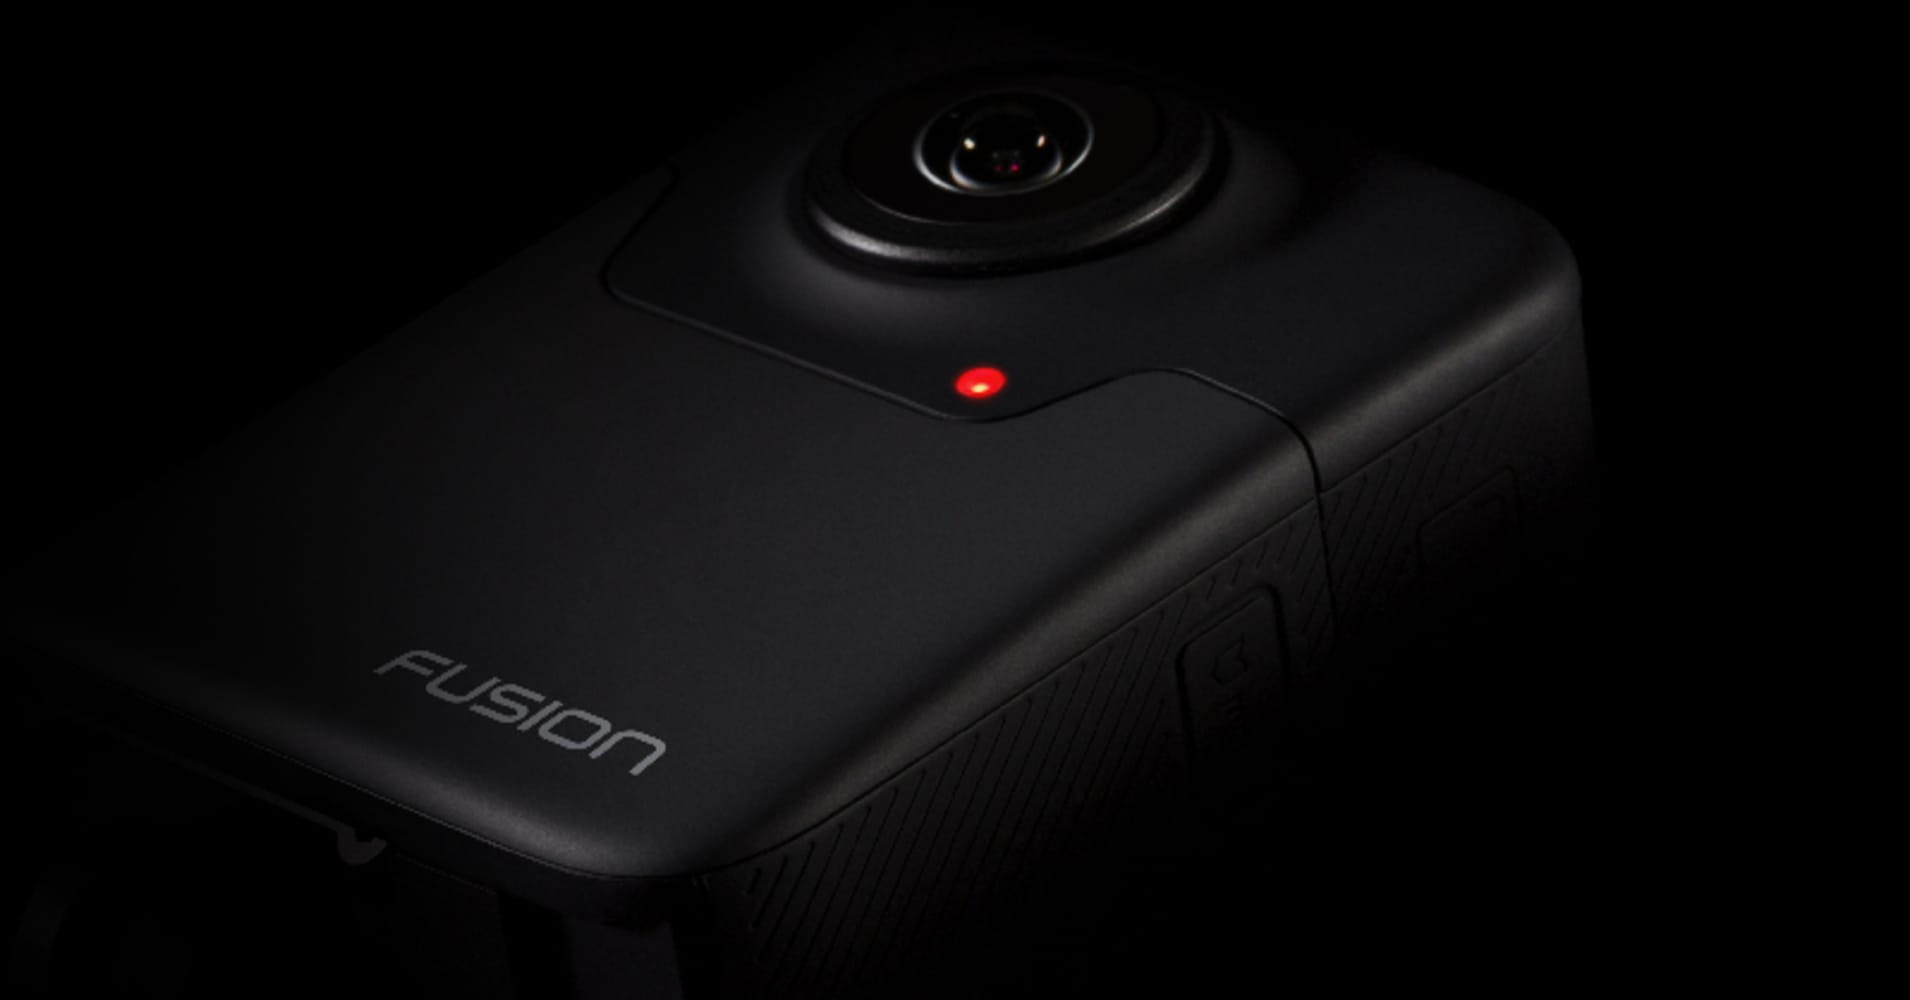 GoPro just unveiled a super high-resolution camera for virtual reality